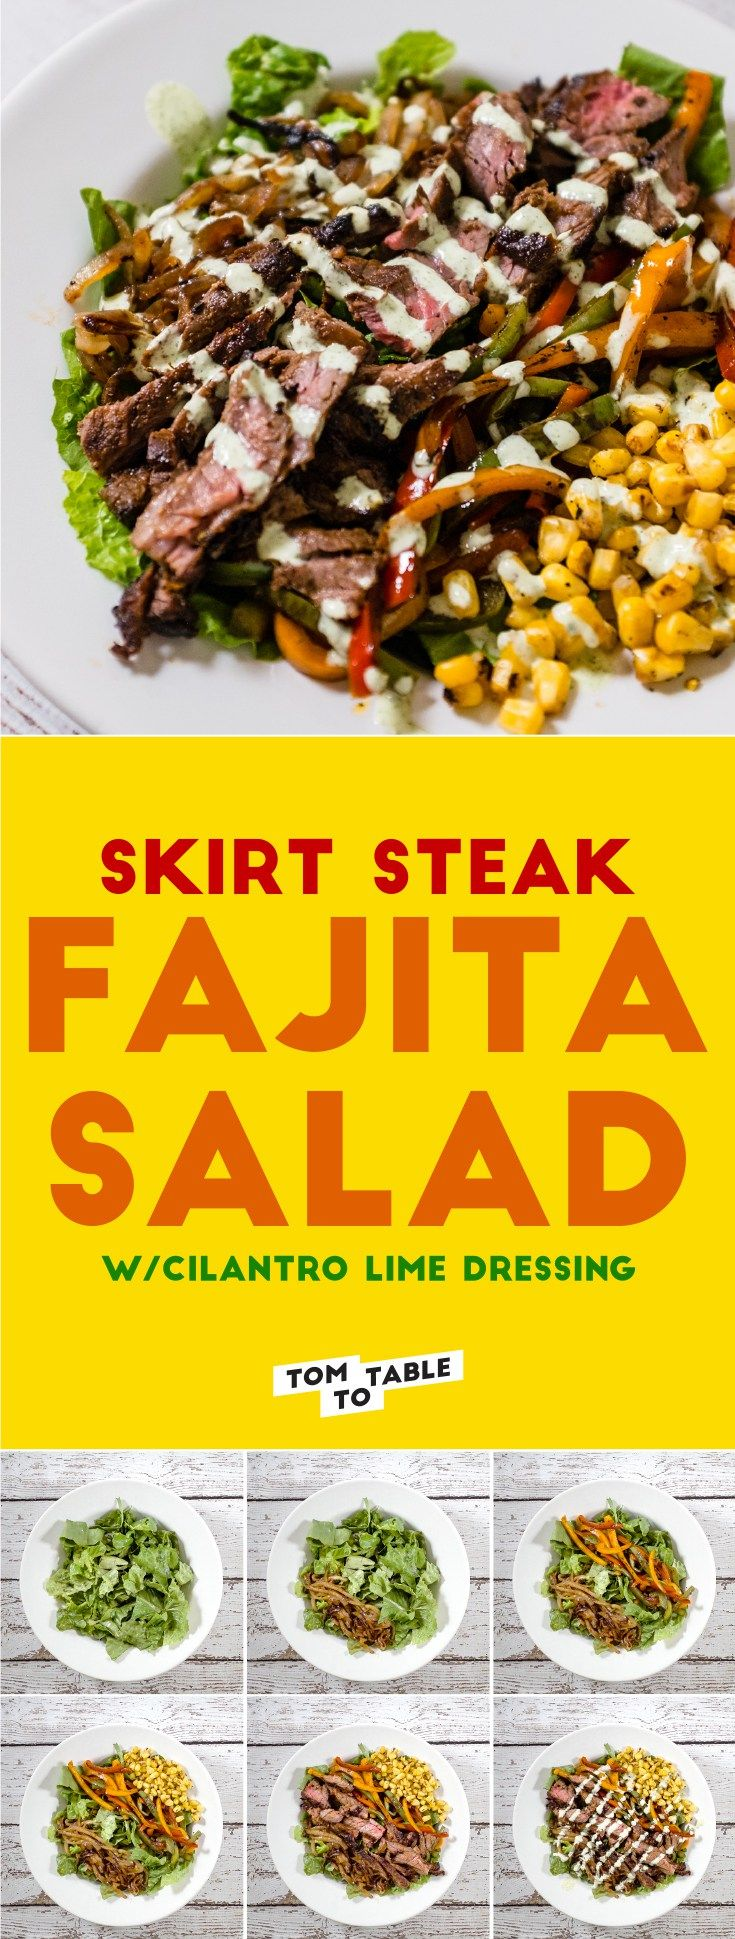 Steak fajitas. It's one of the most wonderfully smelling menu items at a Mexican restaurant. I found an awesome way to have it at home and to take to lunch. It's a delicious fajita salad recipe with cilantro lime dressing. This salad is served with, the quick-to-sear, skirt steak. | tomtotable.com #recipe